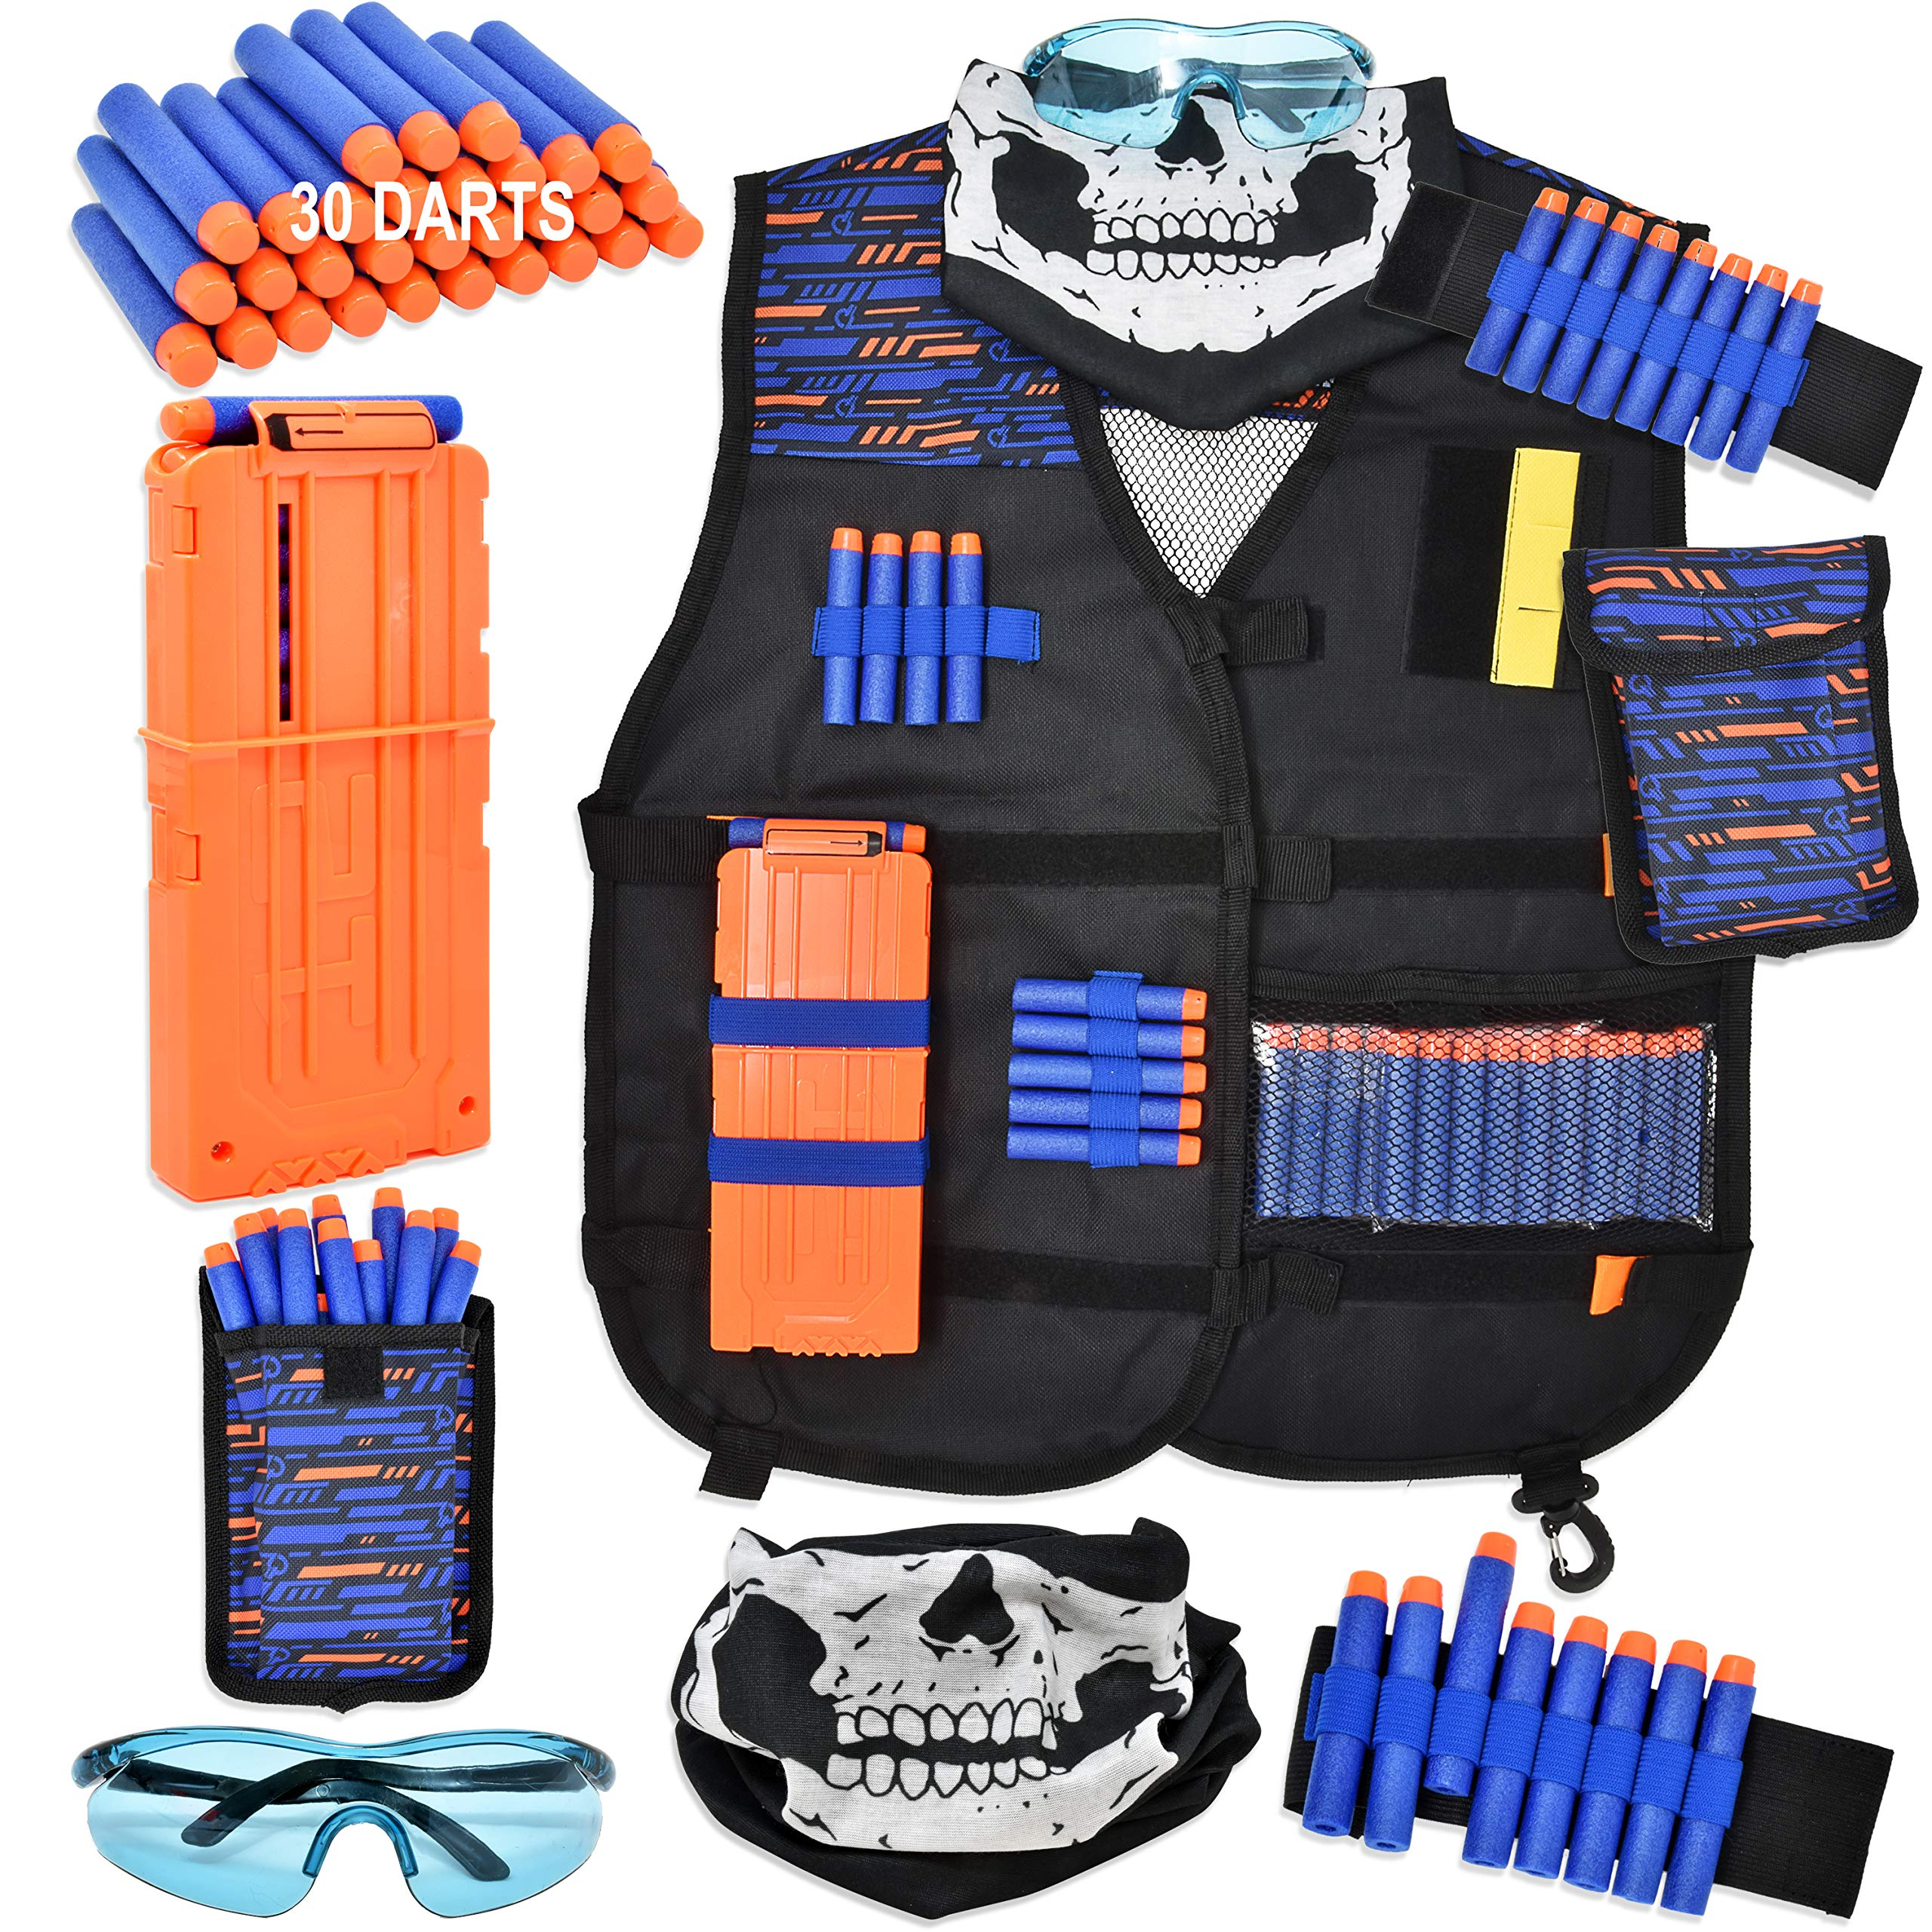 Gift Boutique Tactical Kids Vest Kit #1 Recommended for Nerf Guns N-Strike Elite Gear with Dart Pouch, Tactical Mask, Reload Clips, Protective Glasses, Wrist Band & 30 Refill Blaster Darts for Boys